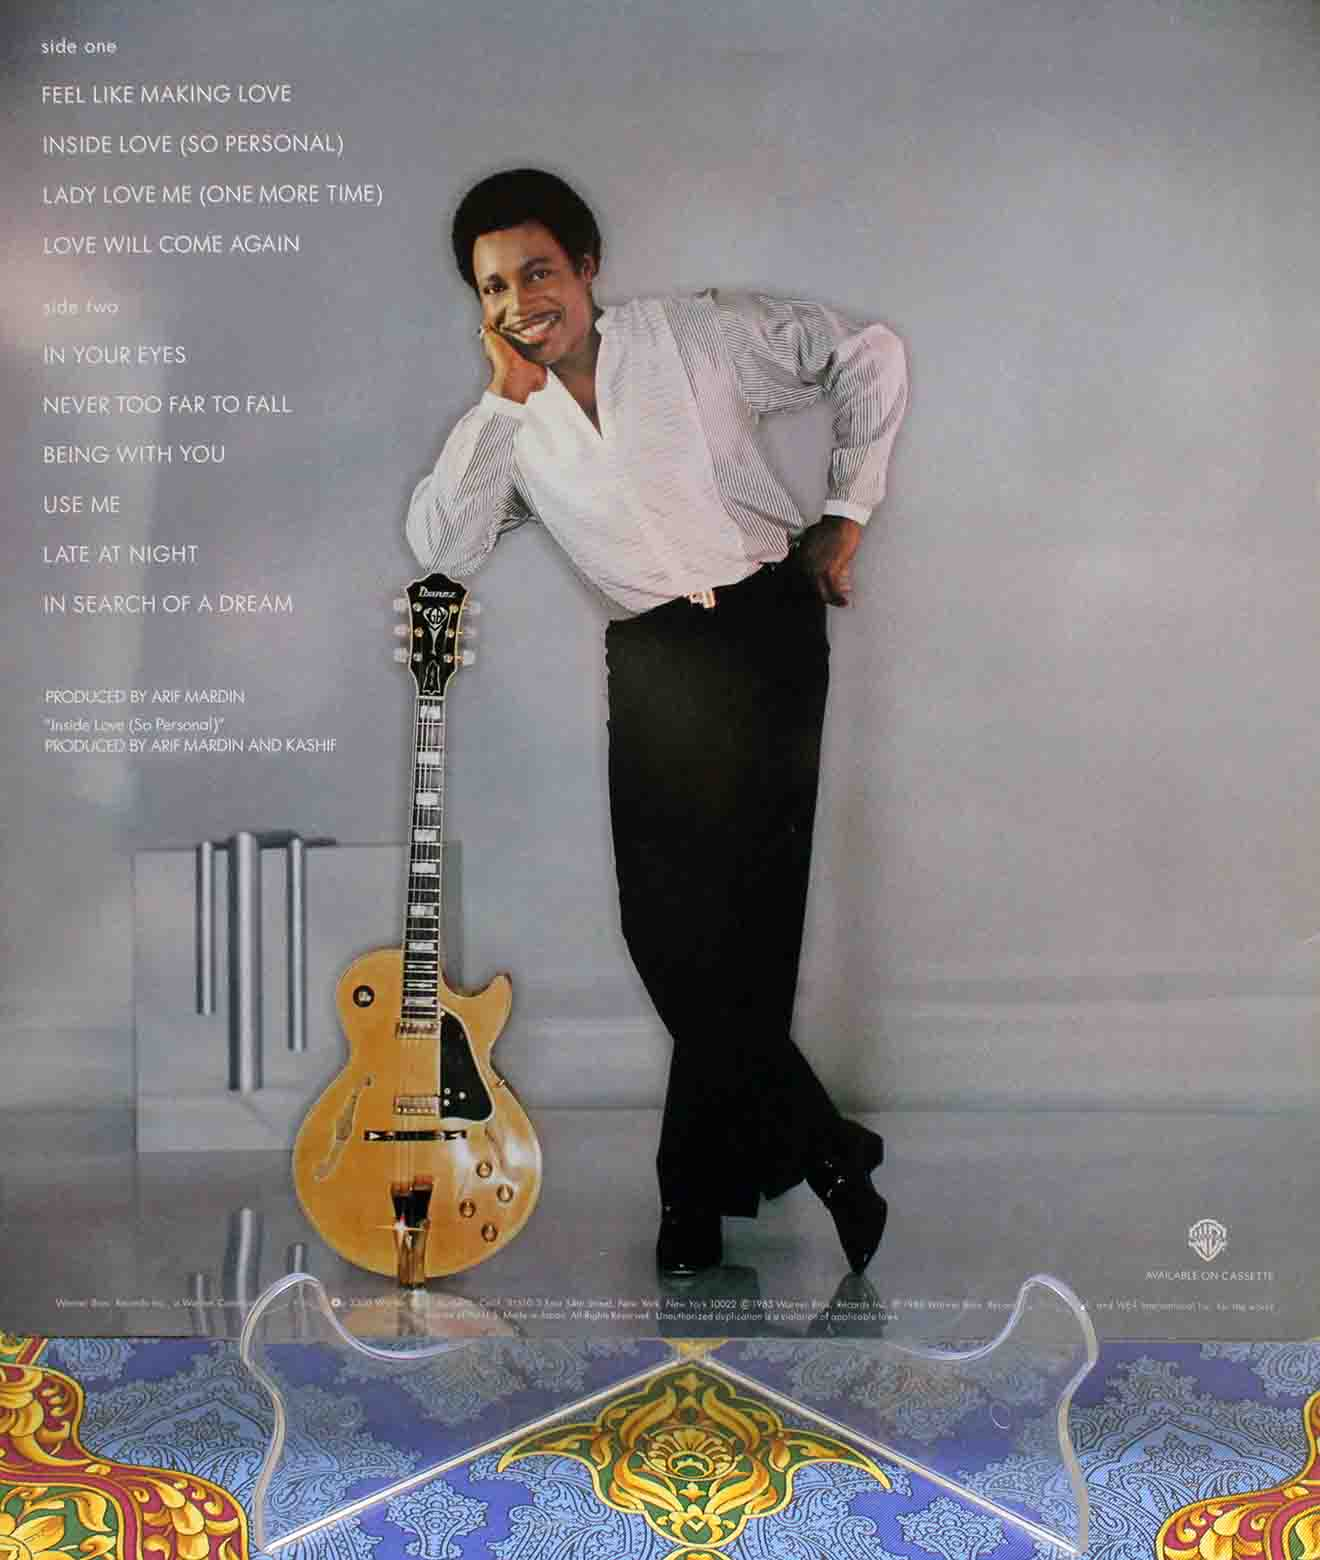 George Benson - In your eyes 02